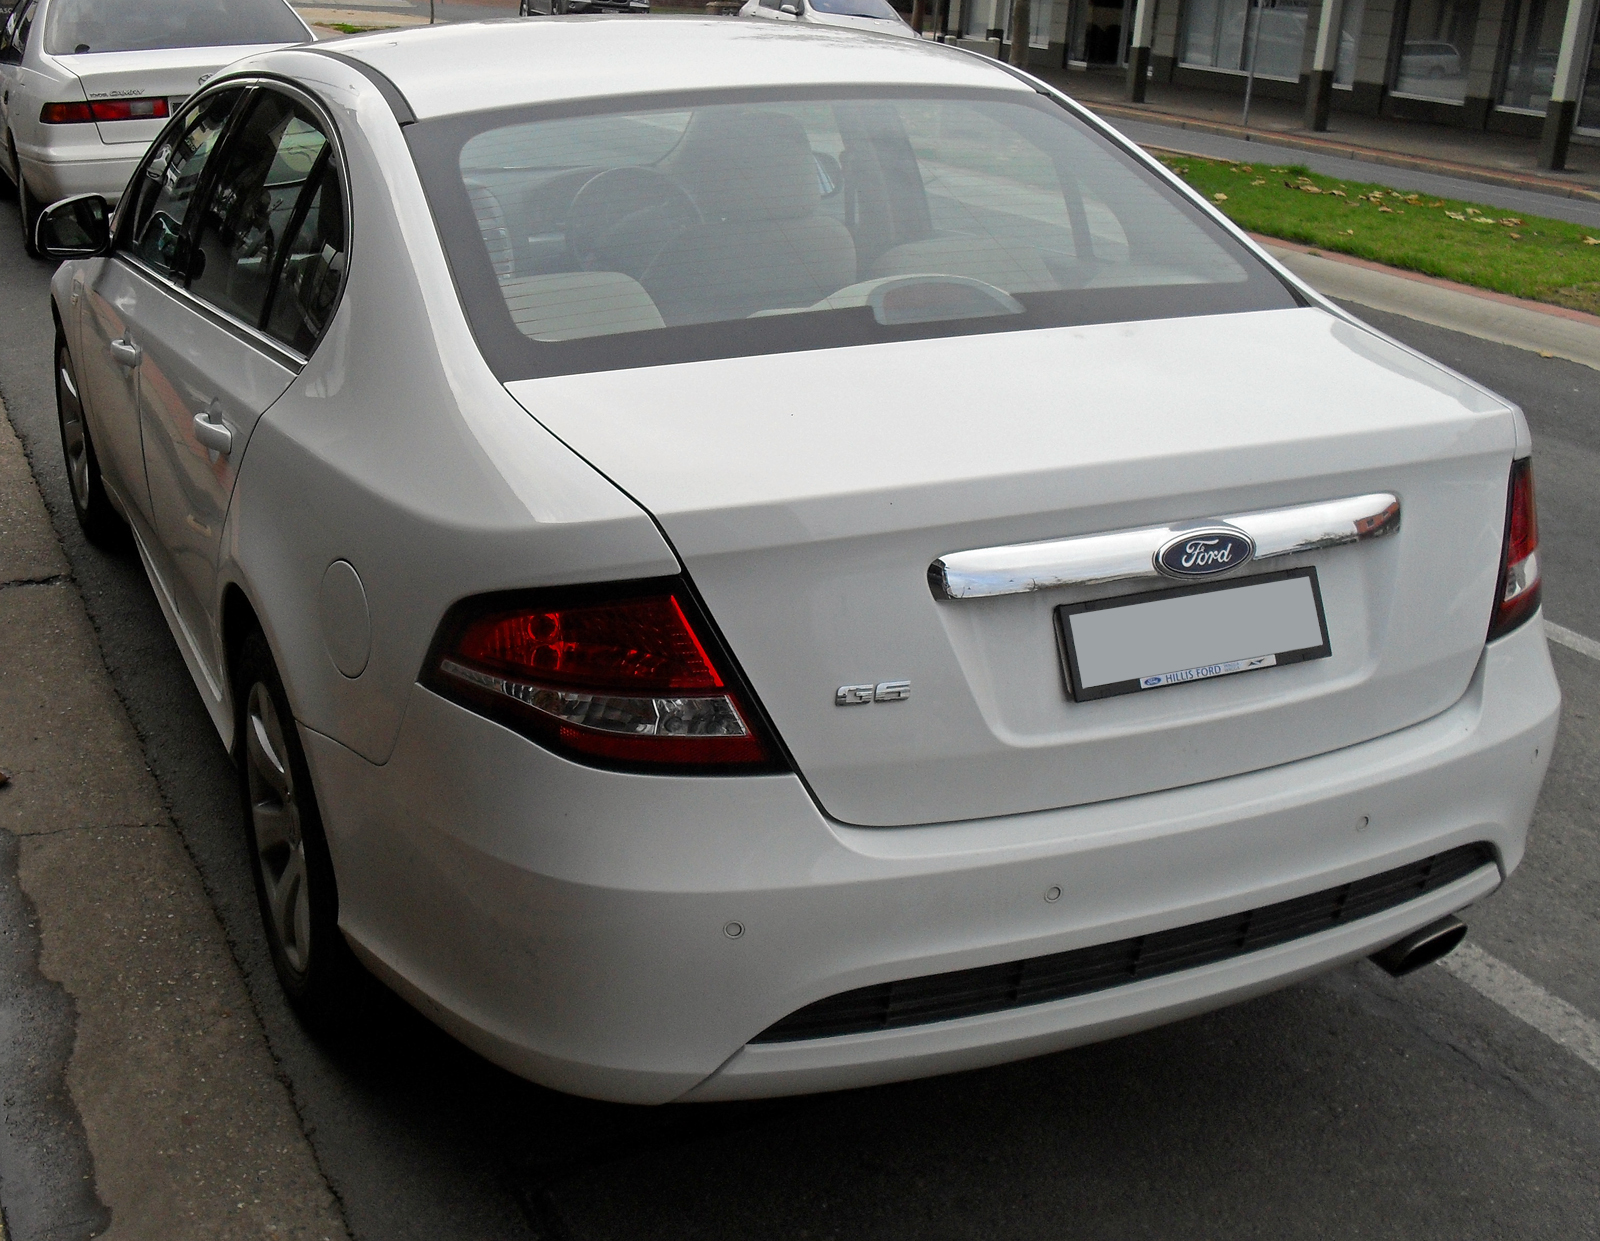 Build A Ford >> File:2008-2009 Ford FG G6 sedan 06.jpg - Wikimedia Commons